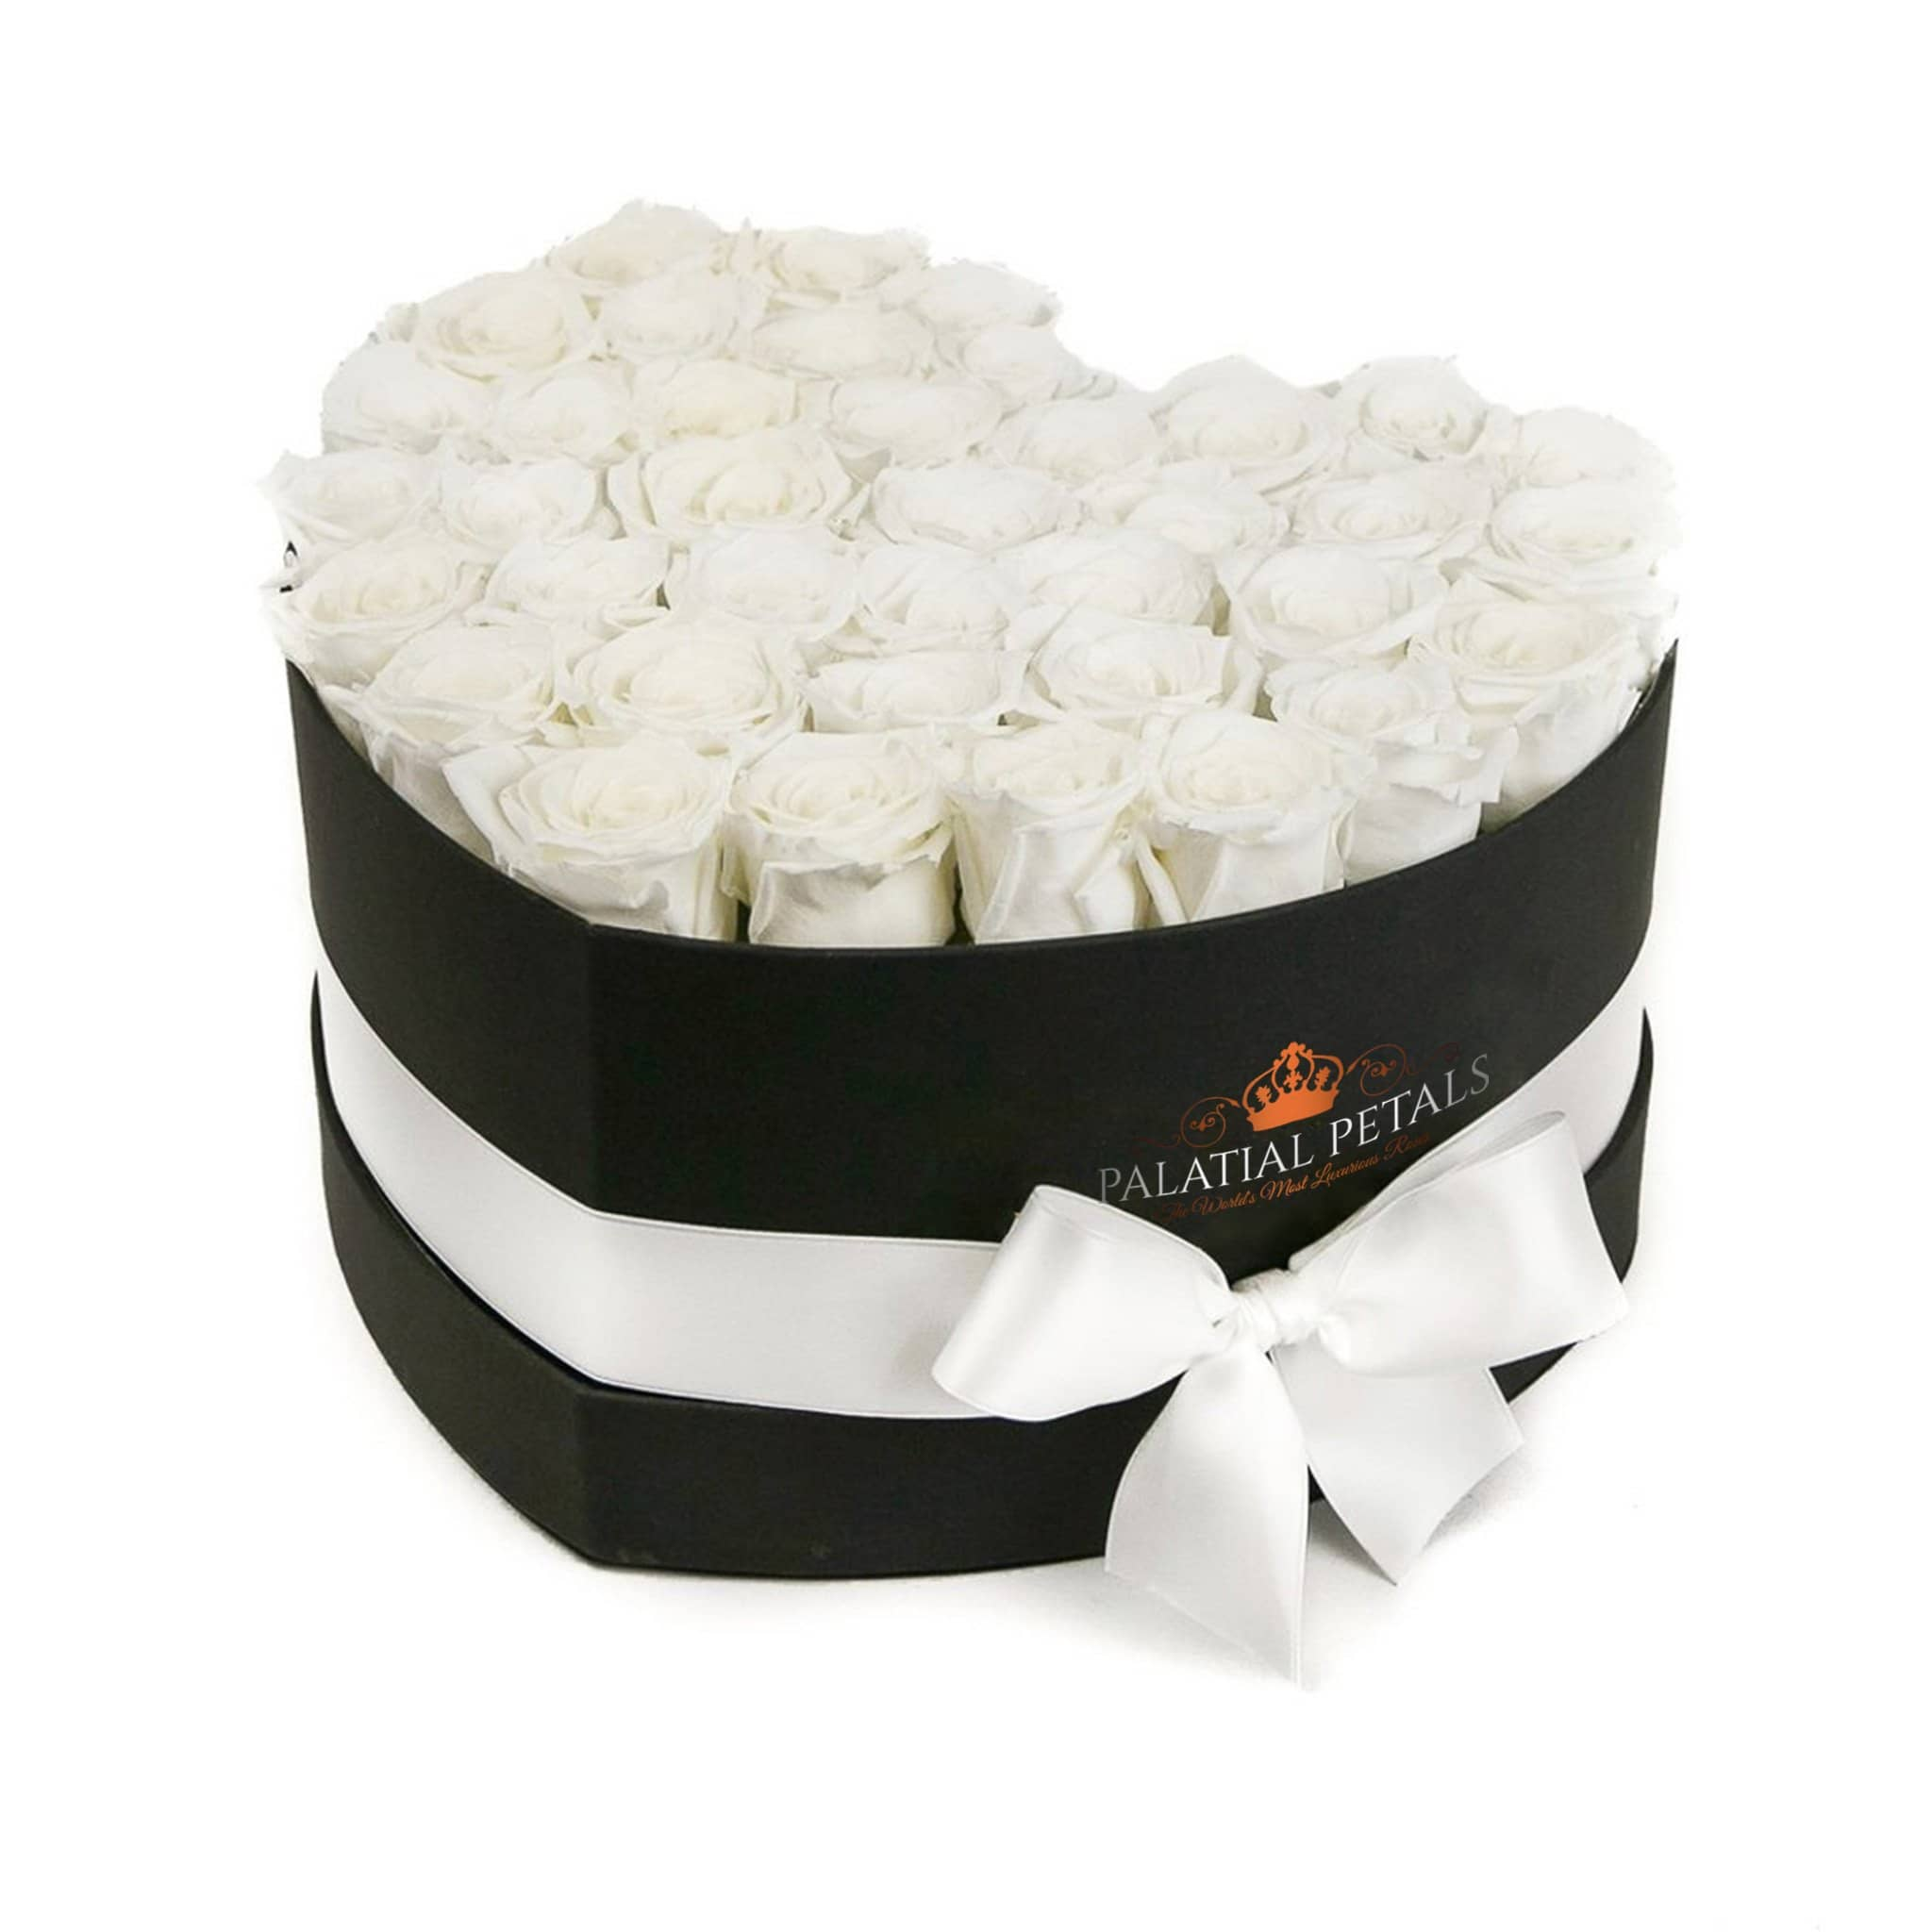 White Roses That Last A Year - Love Heart Rose Box